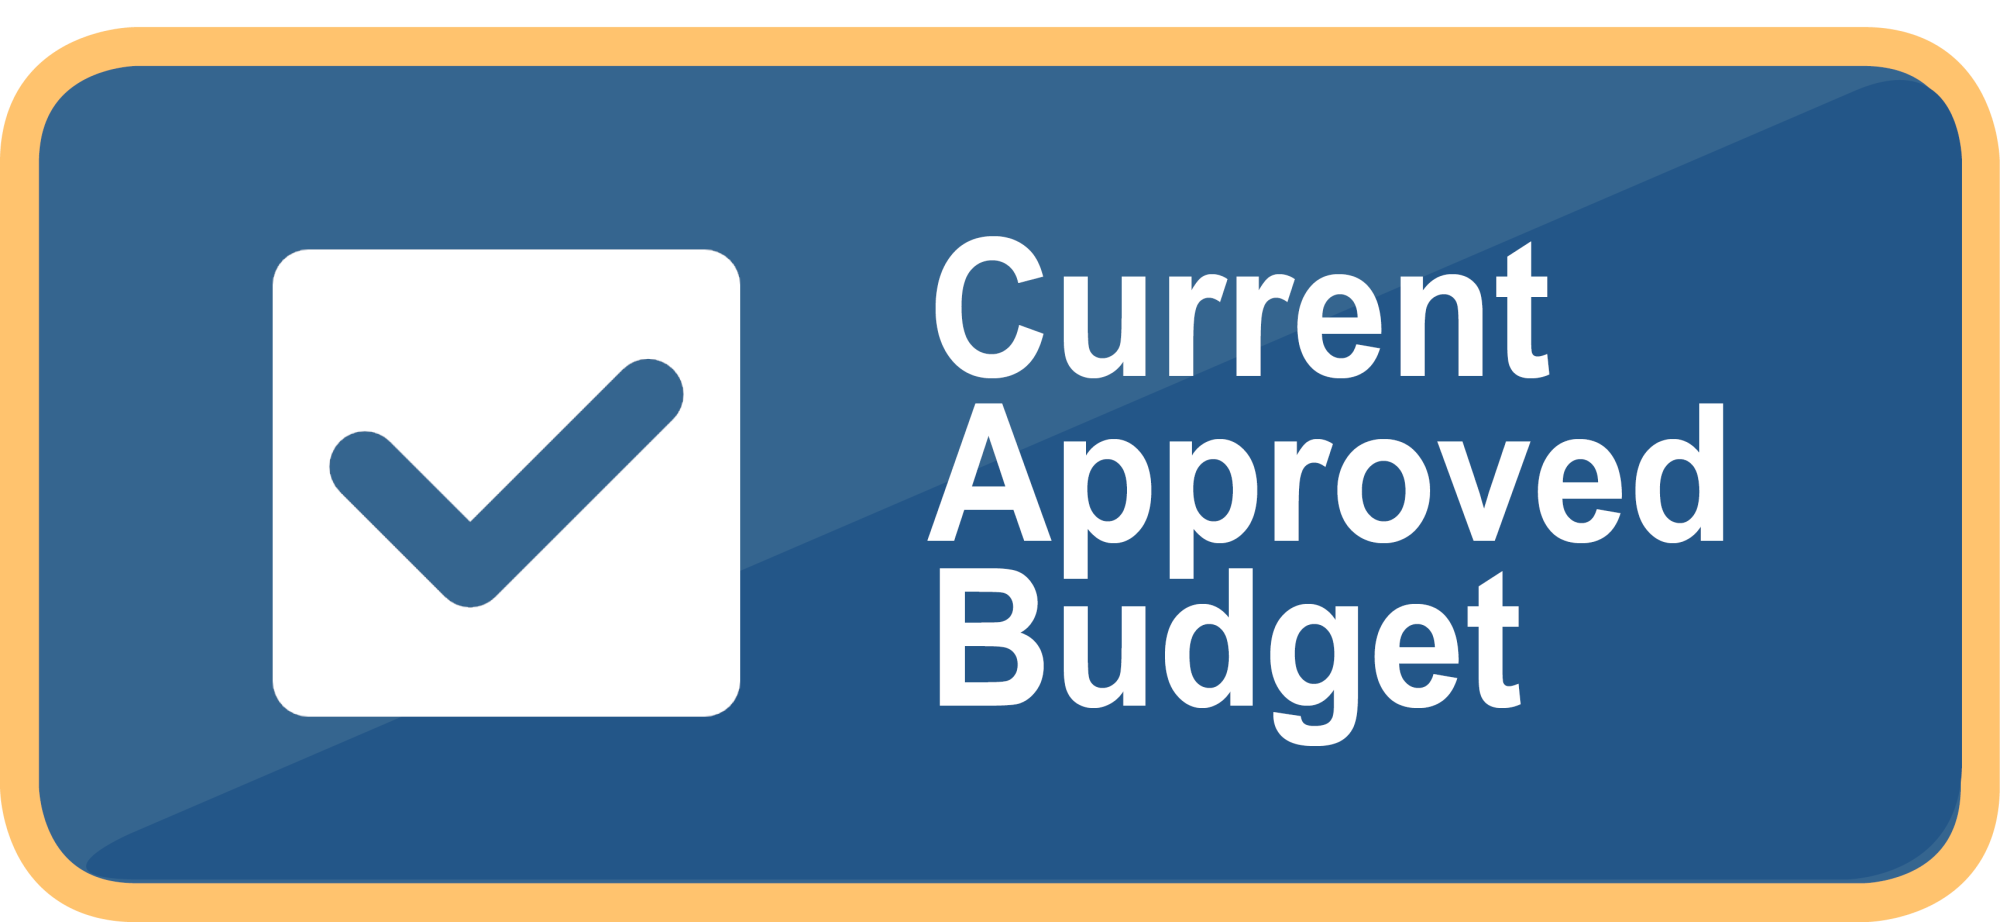 Current Approved Budget